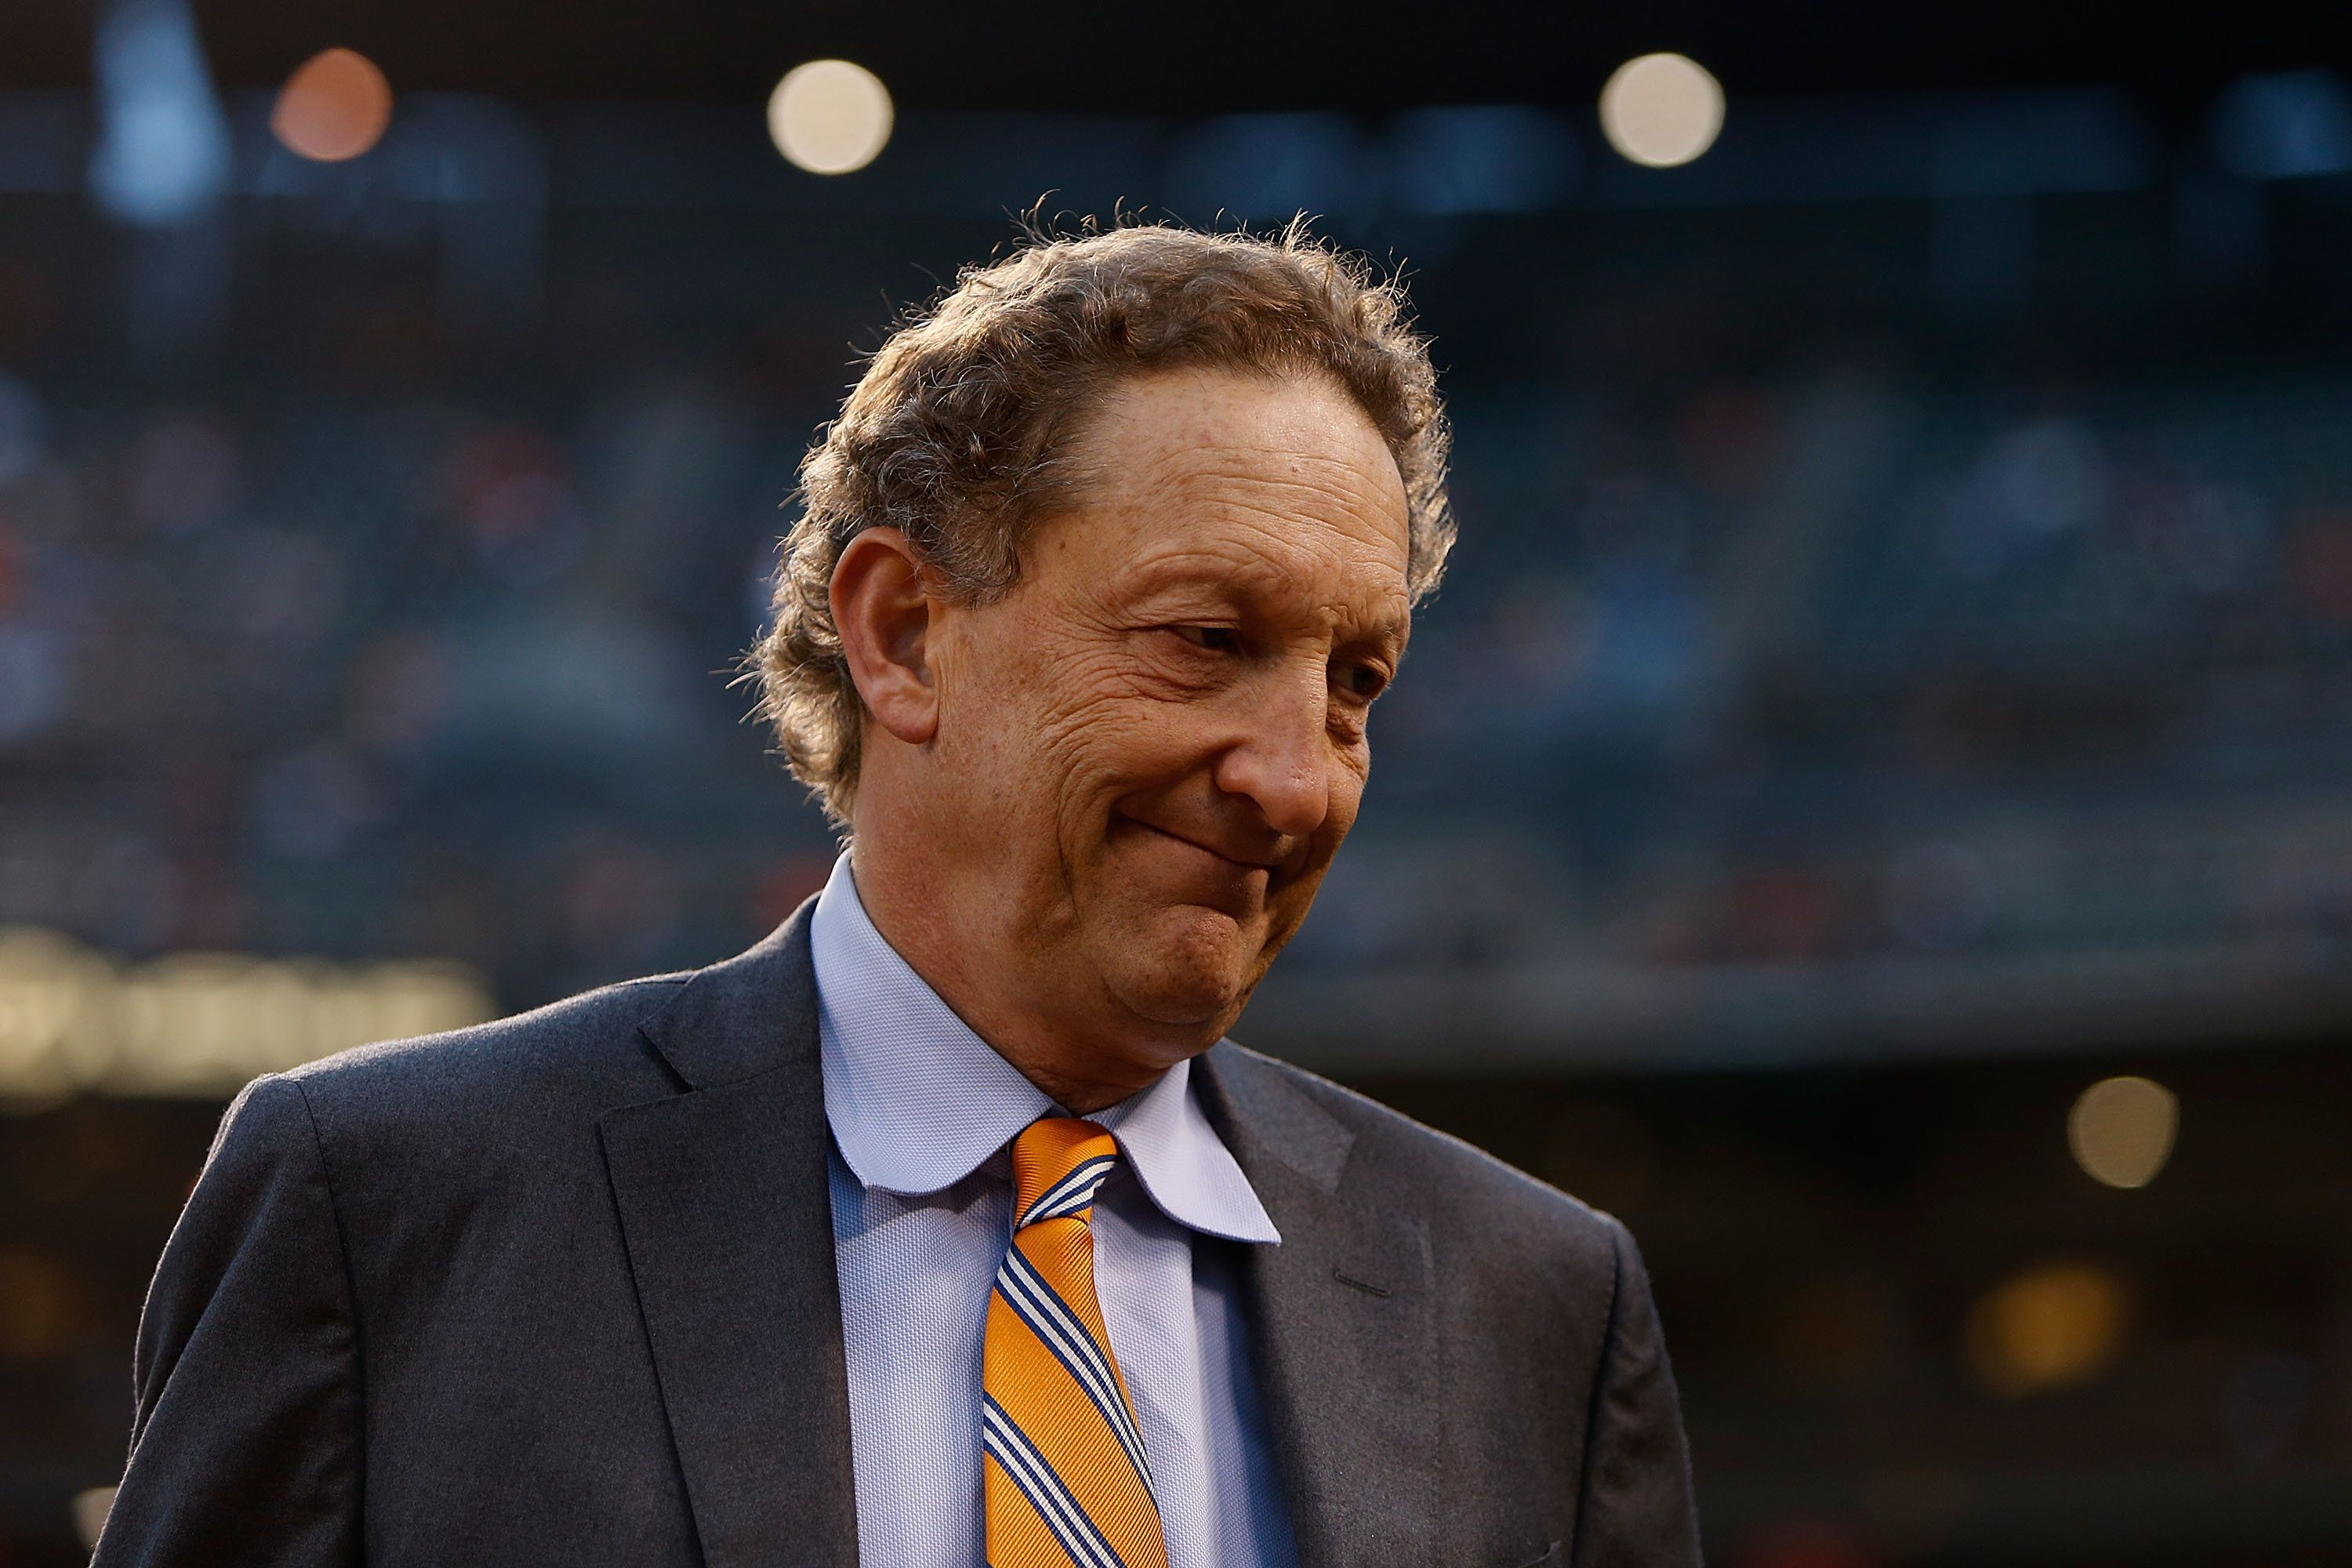 SAN FRANCISCO, CA - SEPTEMBER 12: CEO of the San Francisco Giants Larry Baer looks on before a game against the San Diego Padres at AT&T Park on September 12, 2016 in San Francisco, California.  (Photo by Lachlan Cunningham/Getty Images)